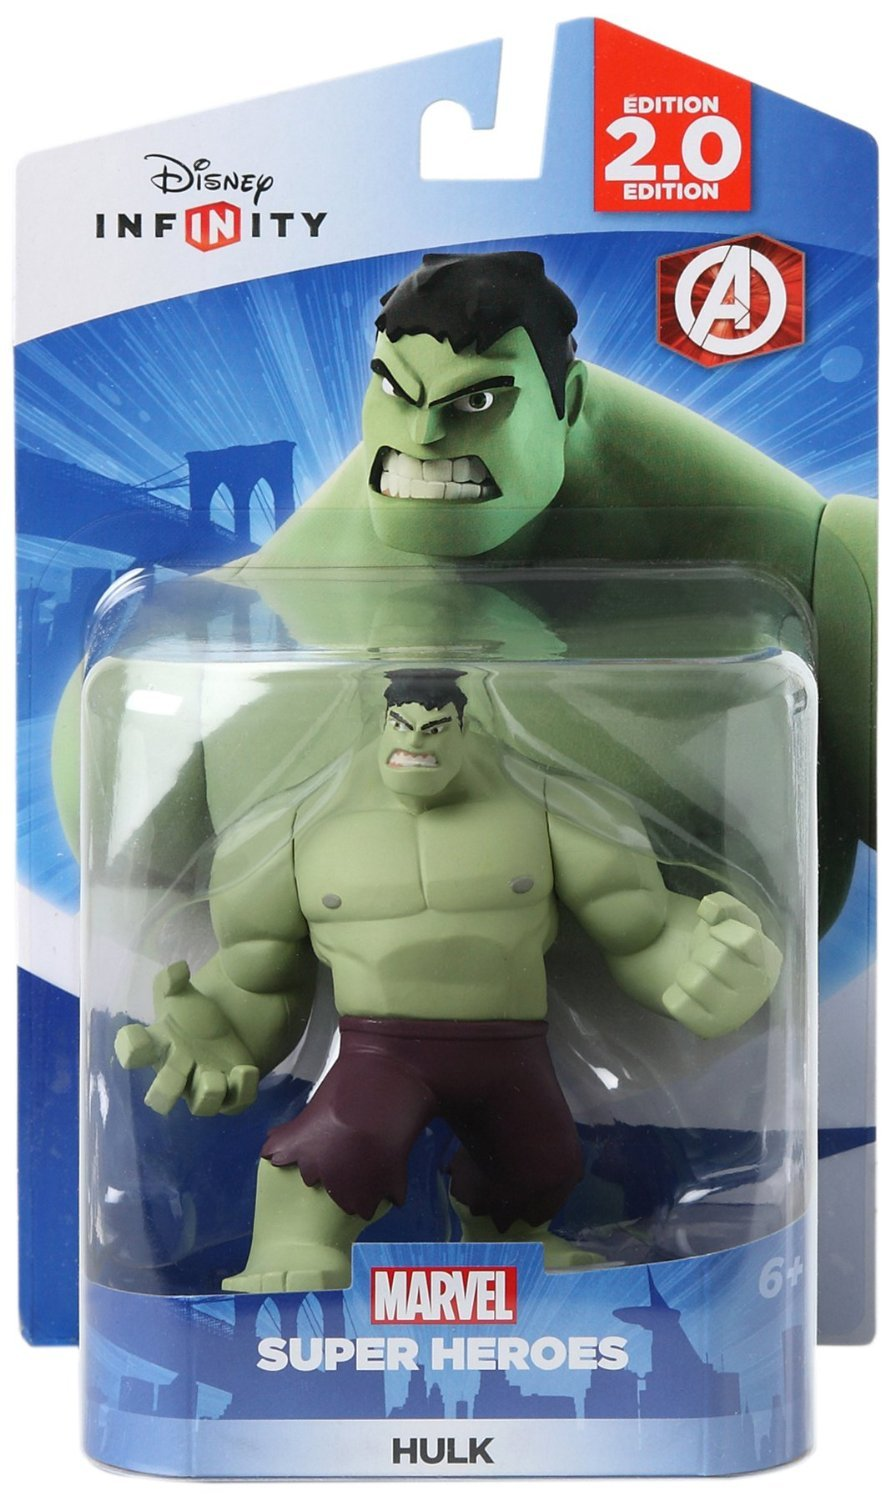 Disney Infinity: Marvel Super Heroes (2.0 Edition) - Hulk Figure - Not Machine Specific